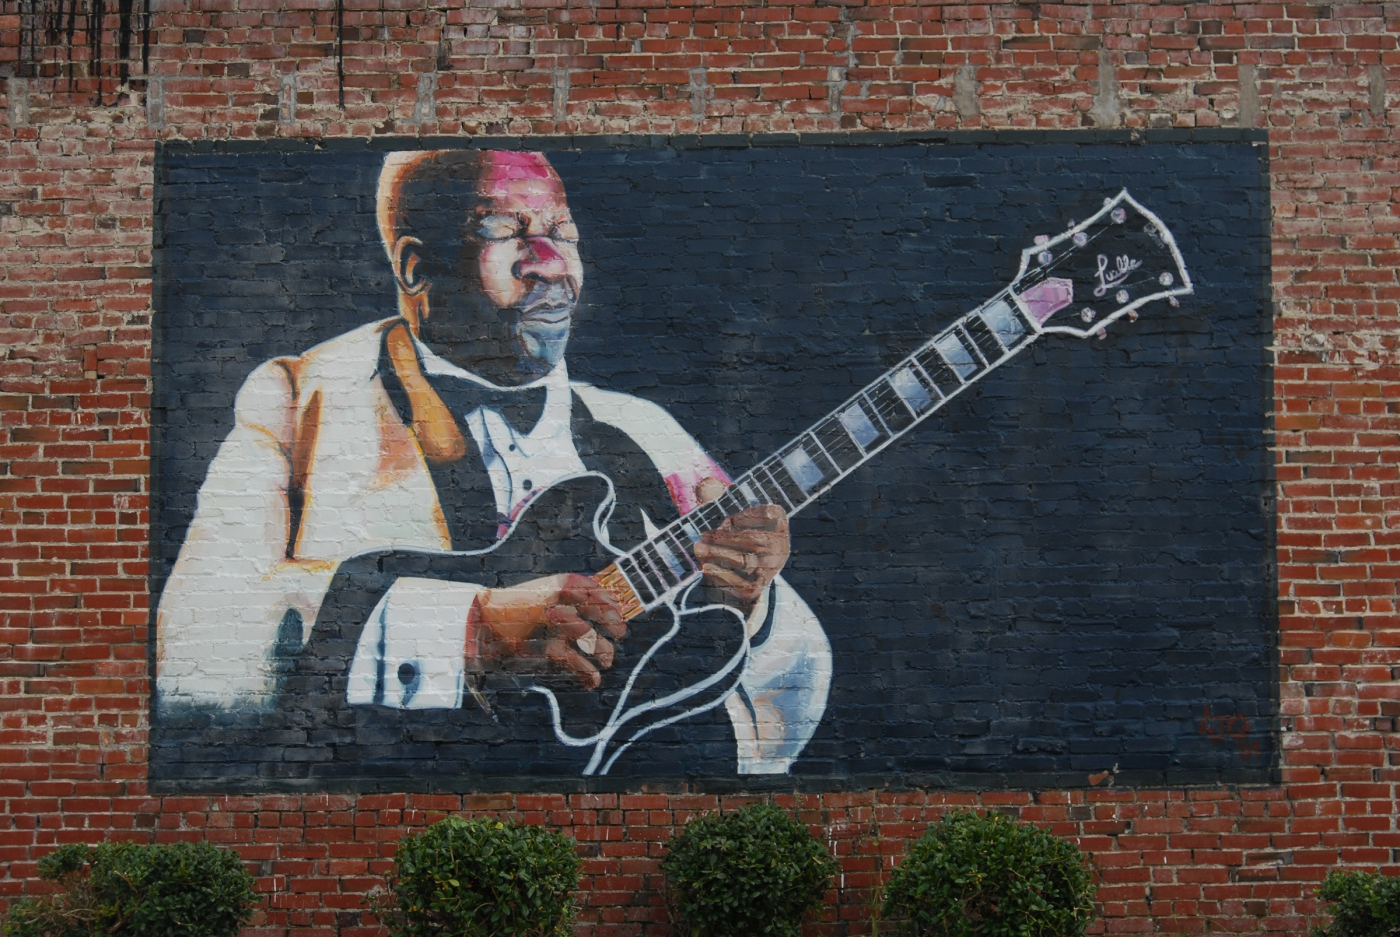 The mural on the outside of The B.B. King Museum captures B.B in his element with his guitar Lucille, and provides a great photo-op.